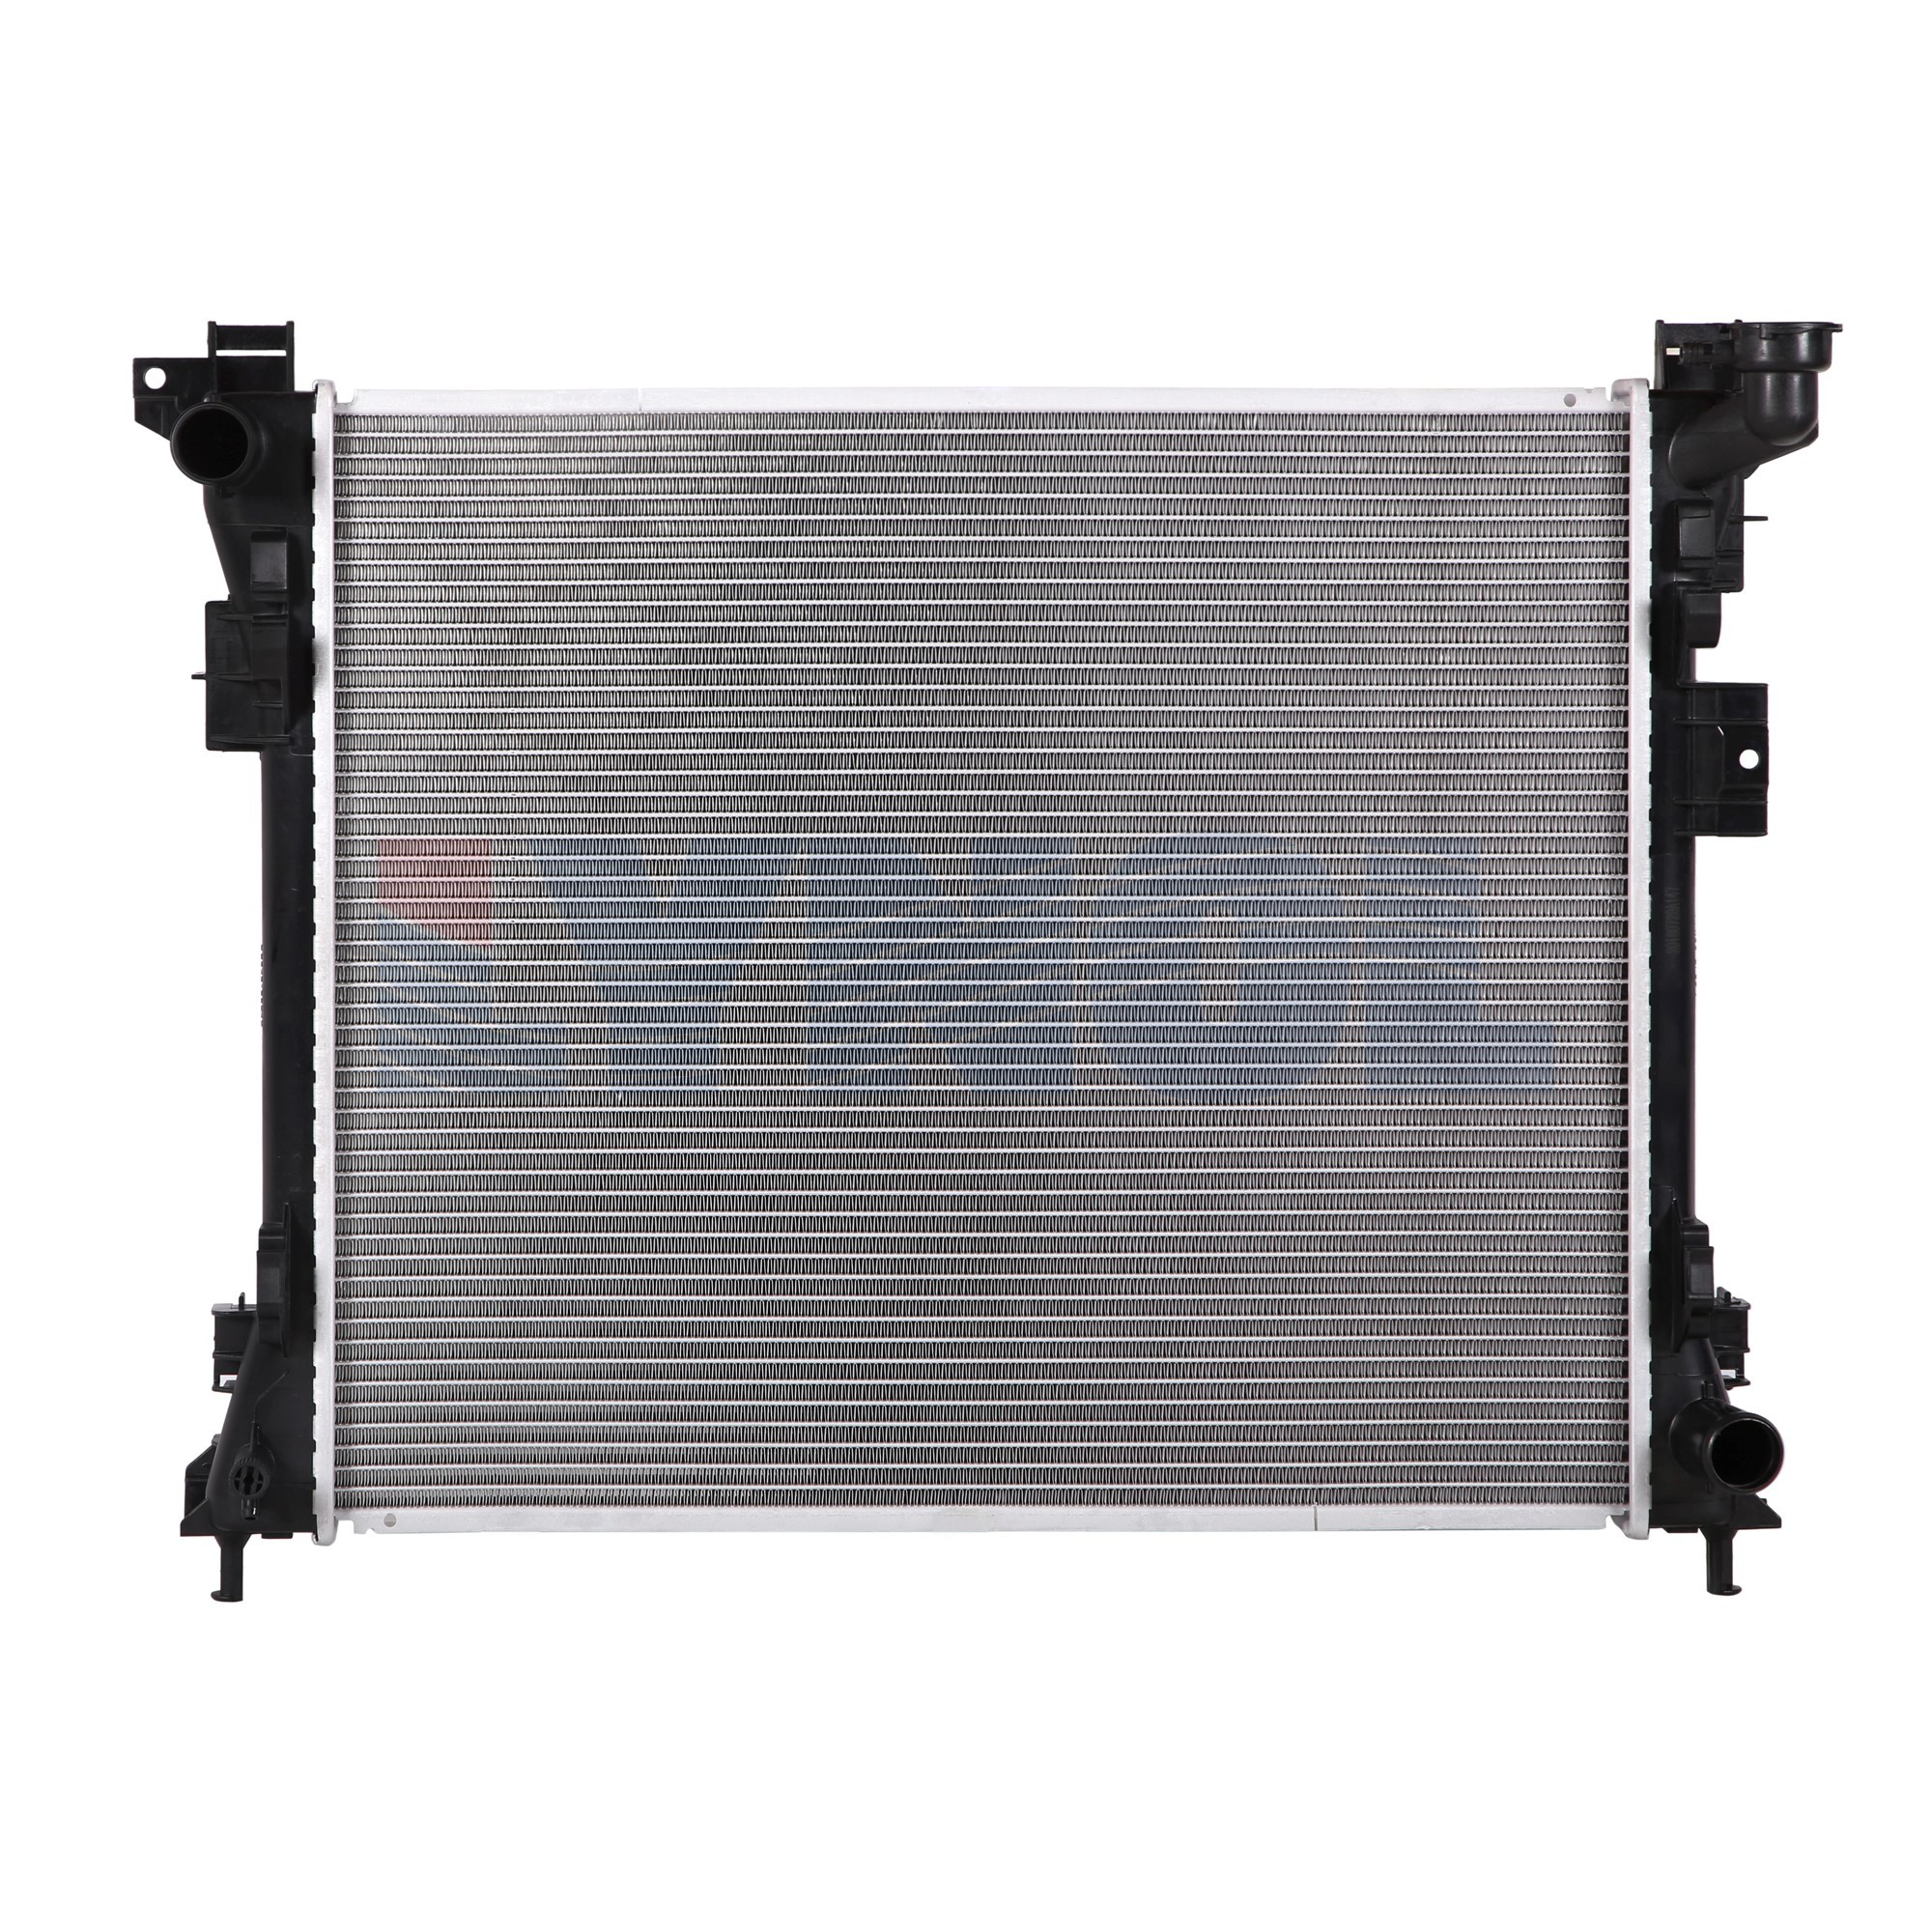 13064 -  RADIATOR - 08-19 Chrysler/Dodge/Volkswagen/Ram Town & Country/Grand Caravan/Routan/C/V 3.3l/3.6l/3.8l/4.0l V6